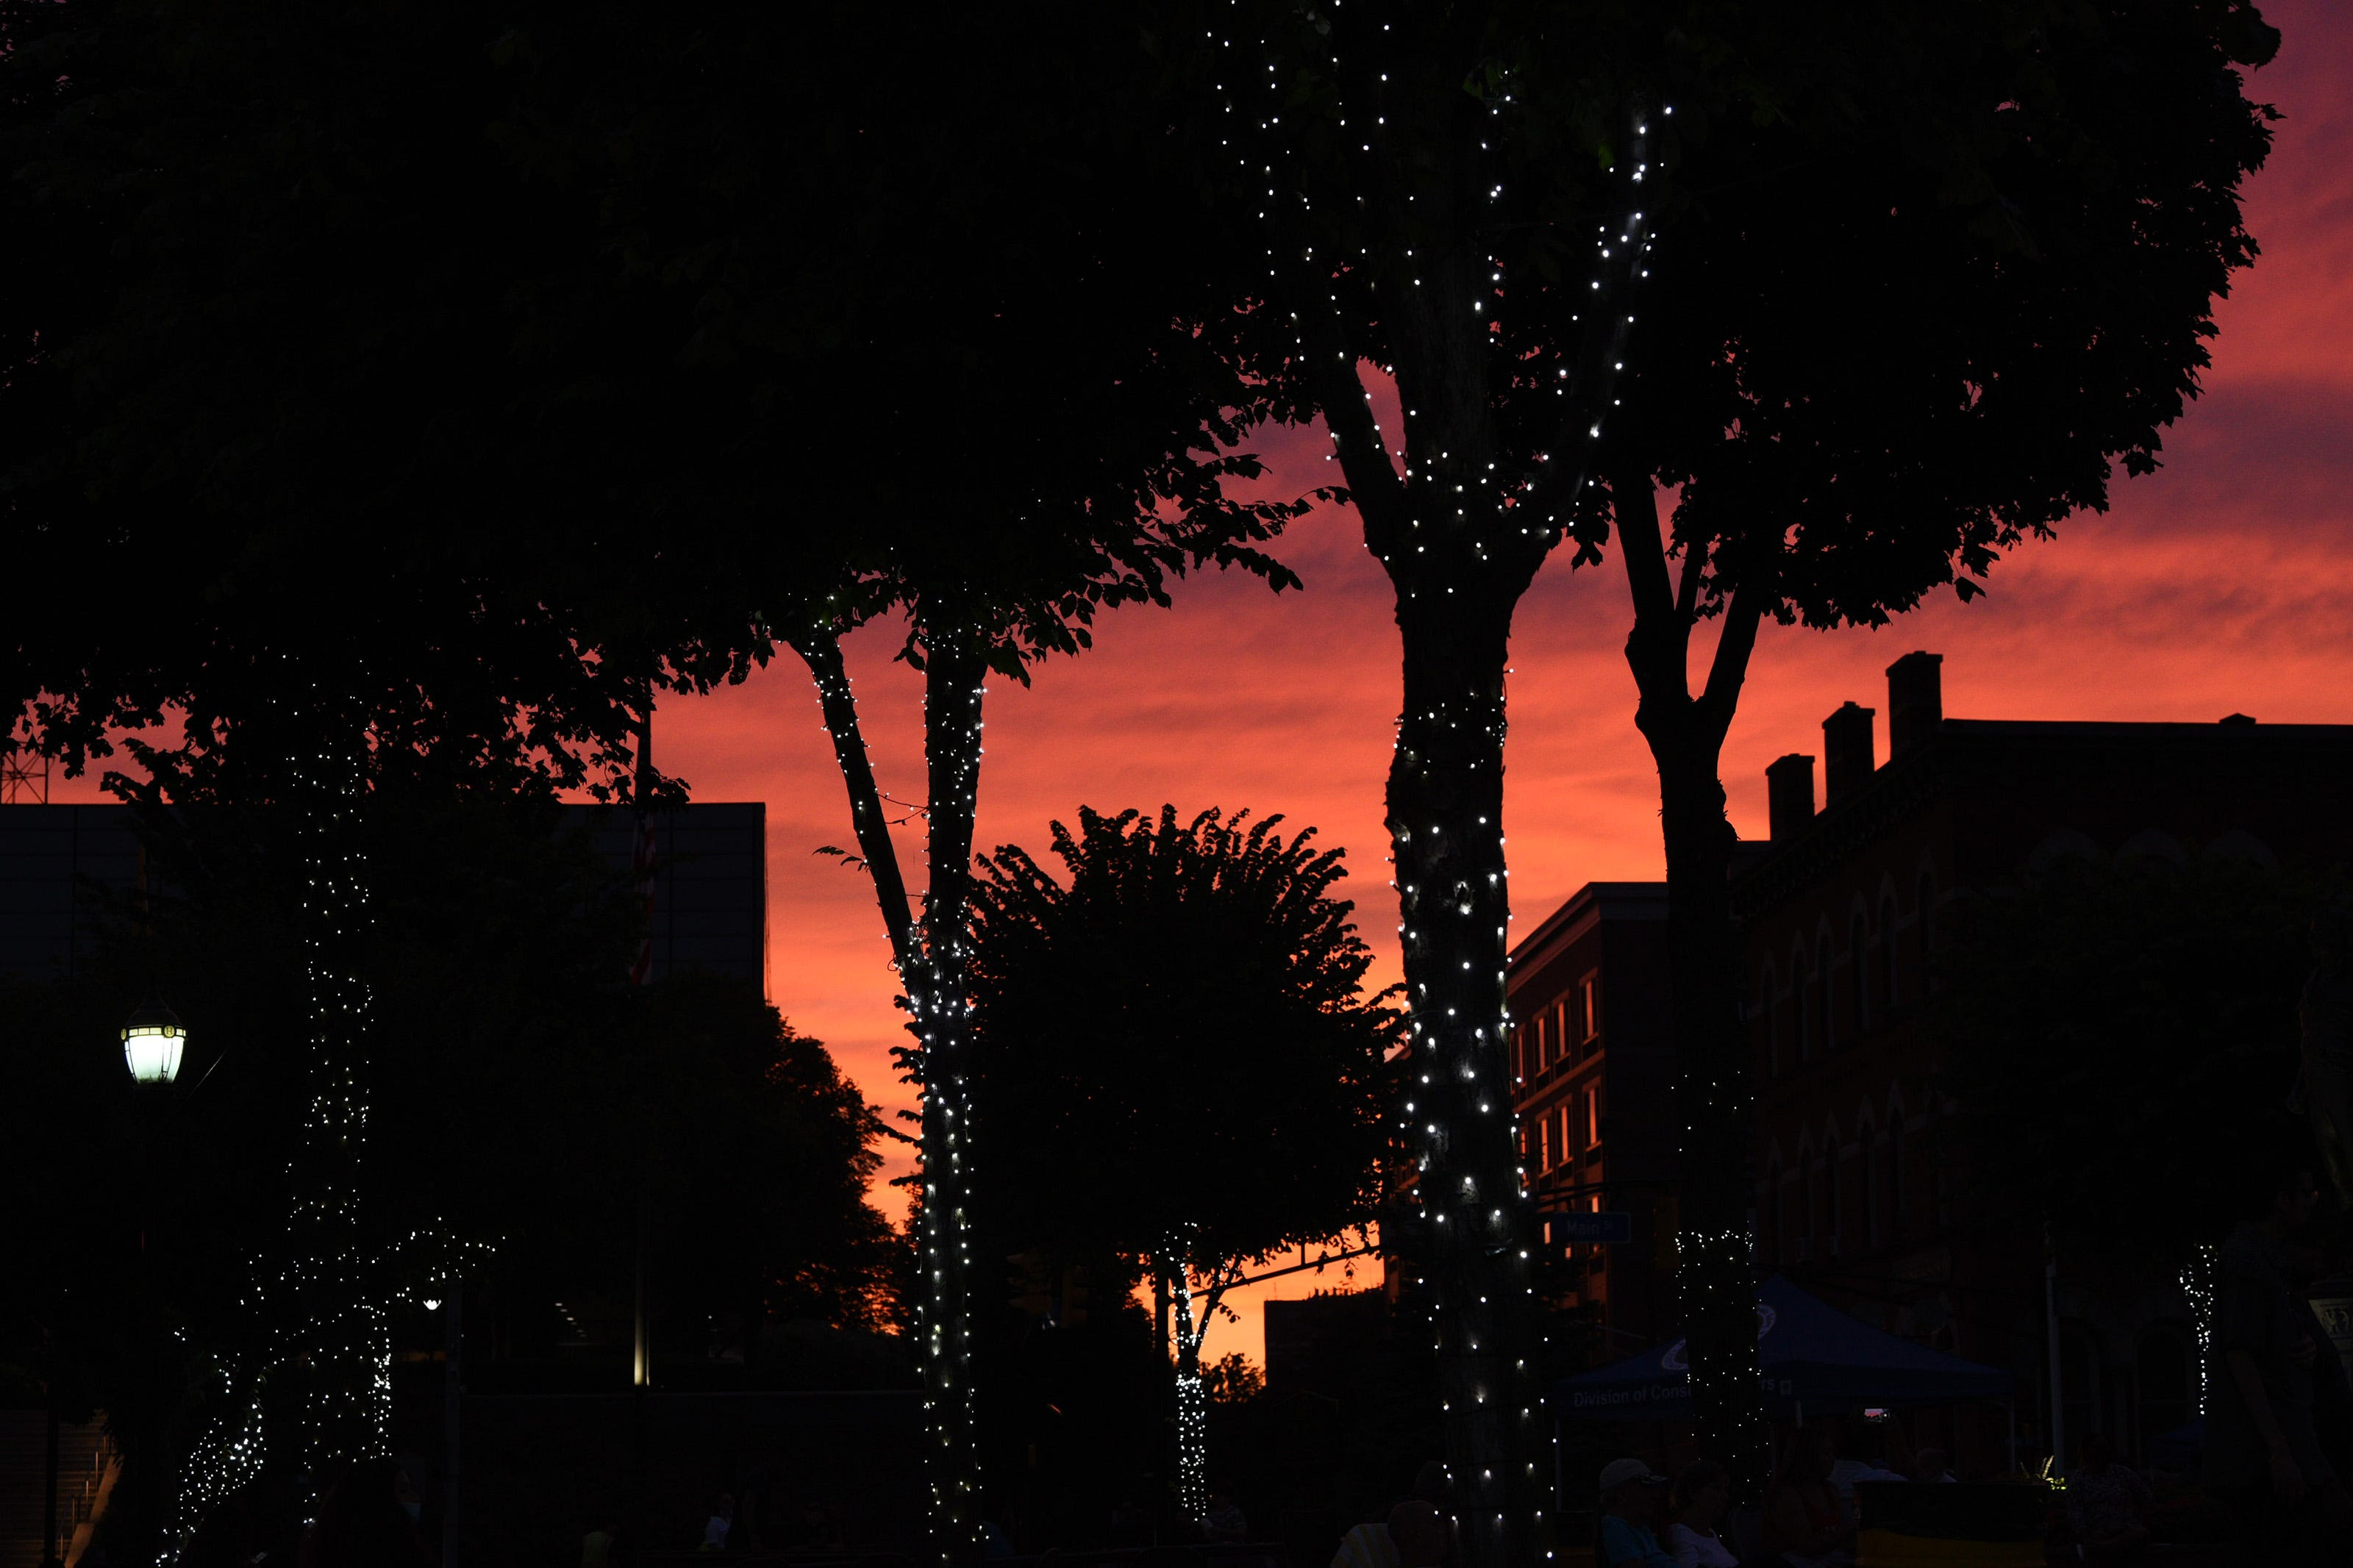 The dramatic evening sky creates a silhouette of trees and buildings on The Green in Hackensack during the free Summer Concert series hosted by HACPAC on 08/03/21.